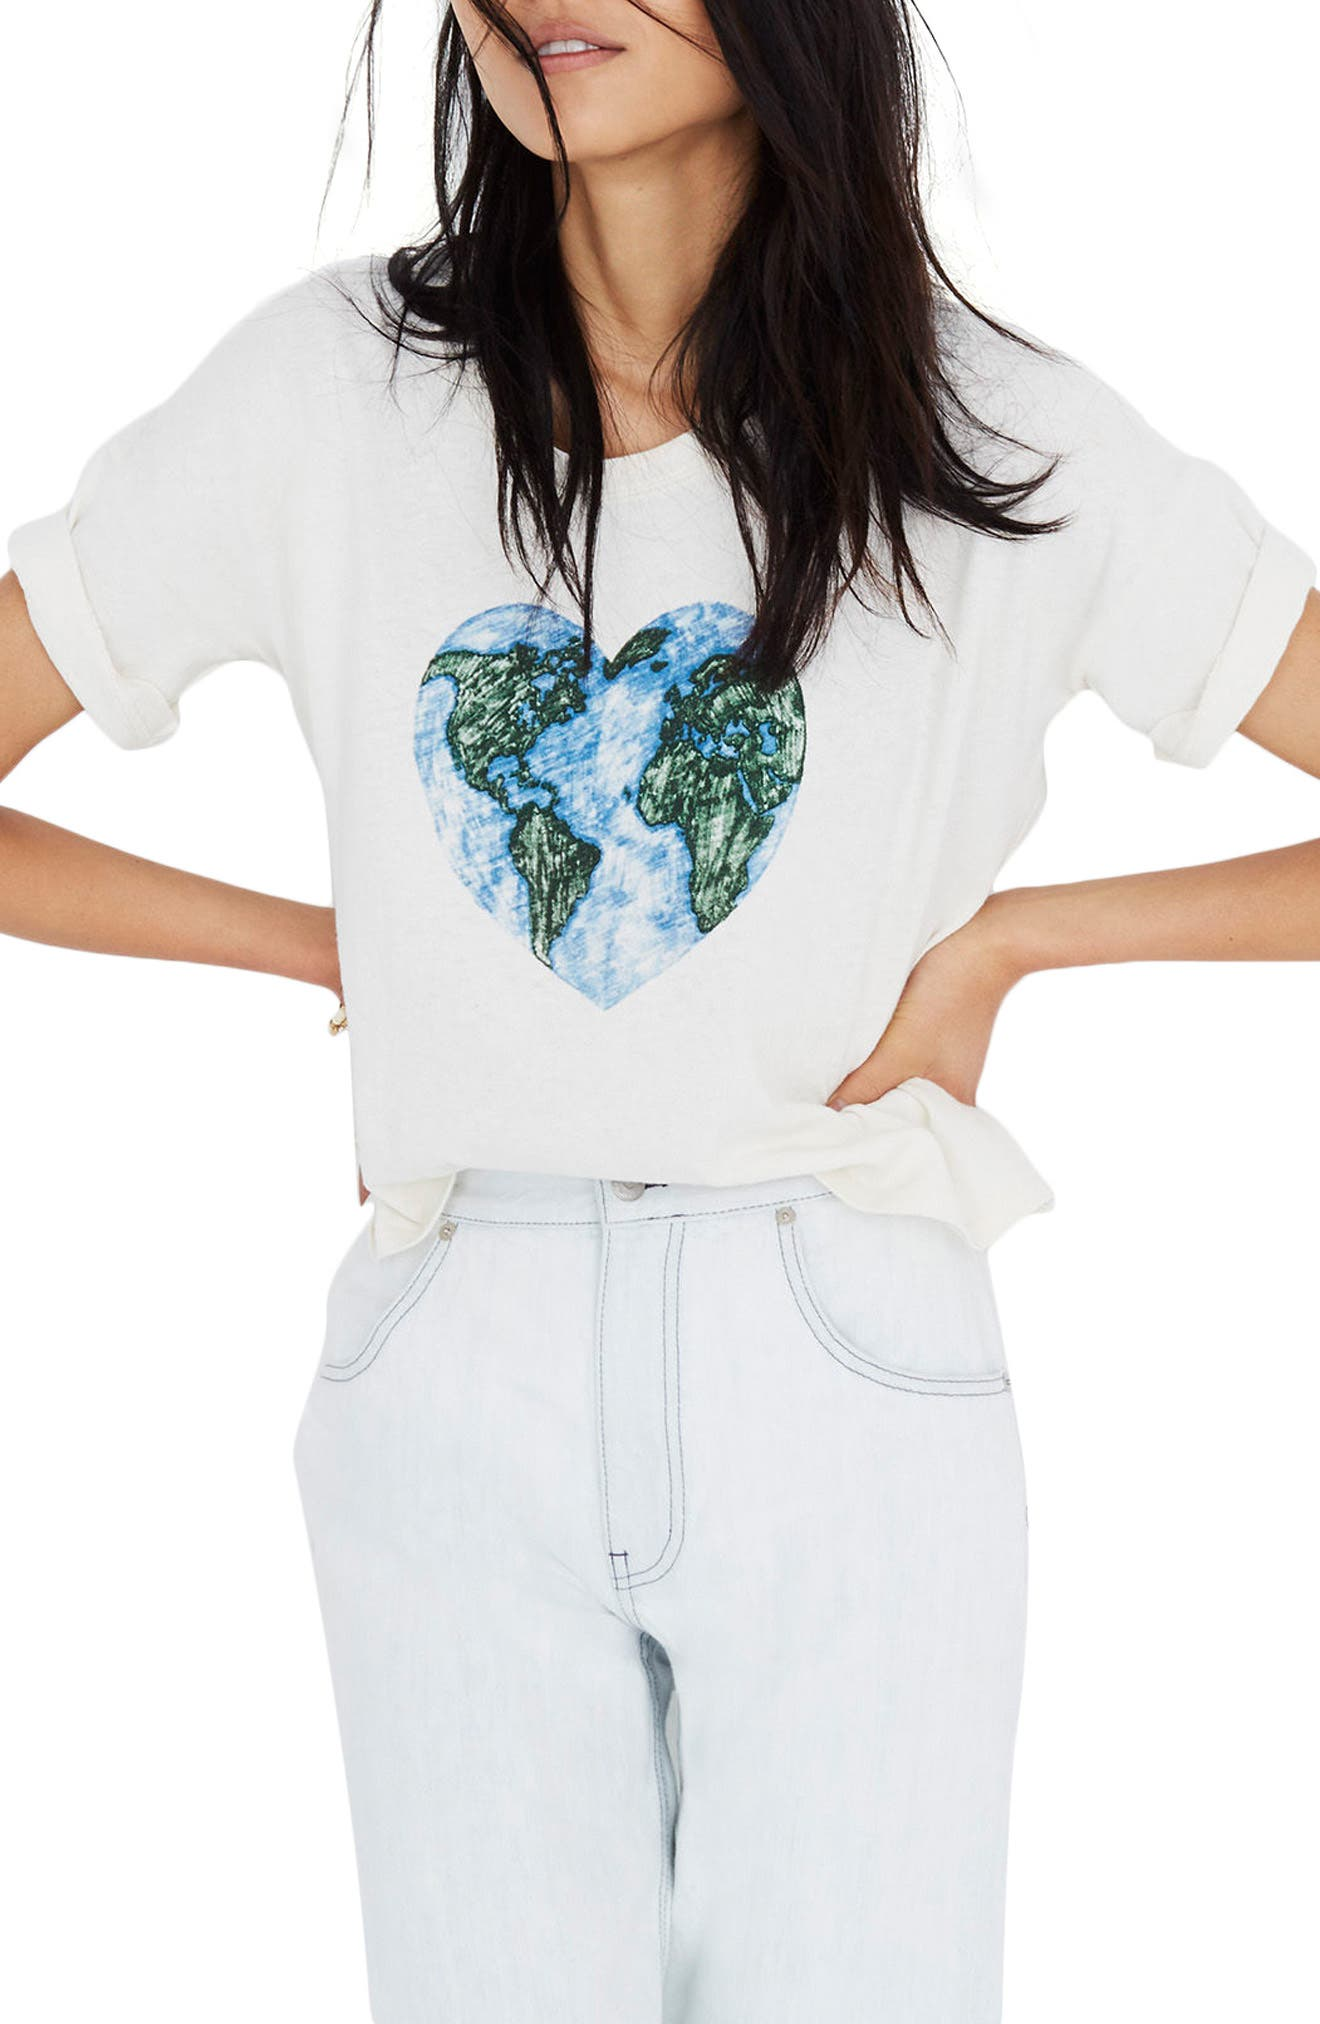 Alternate Image 1 Selected - Madewell x Surfrider Foundation Mother Earth Tee